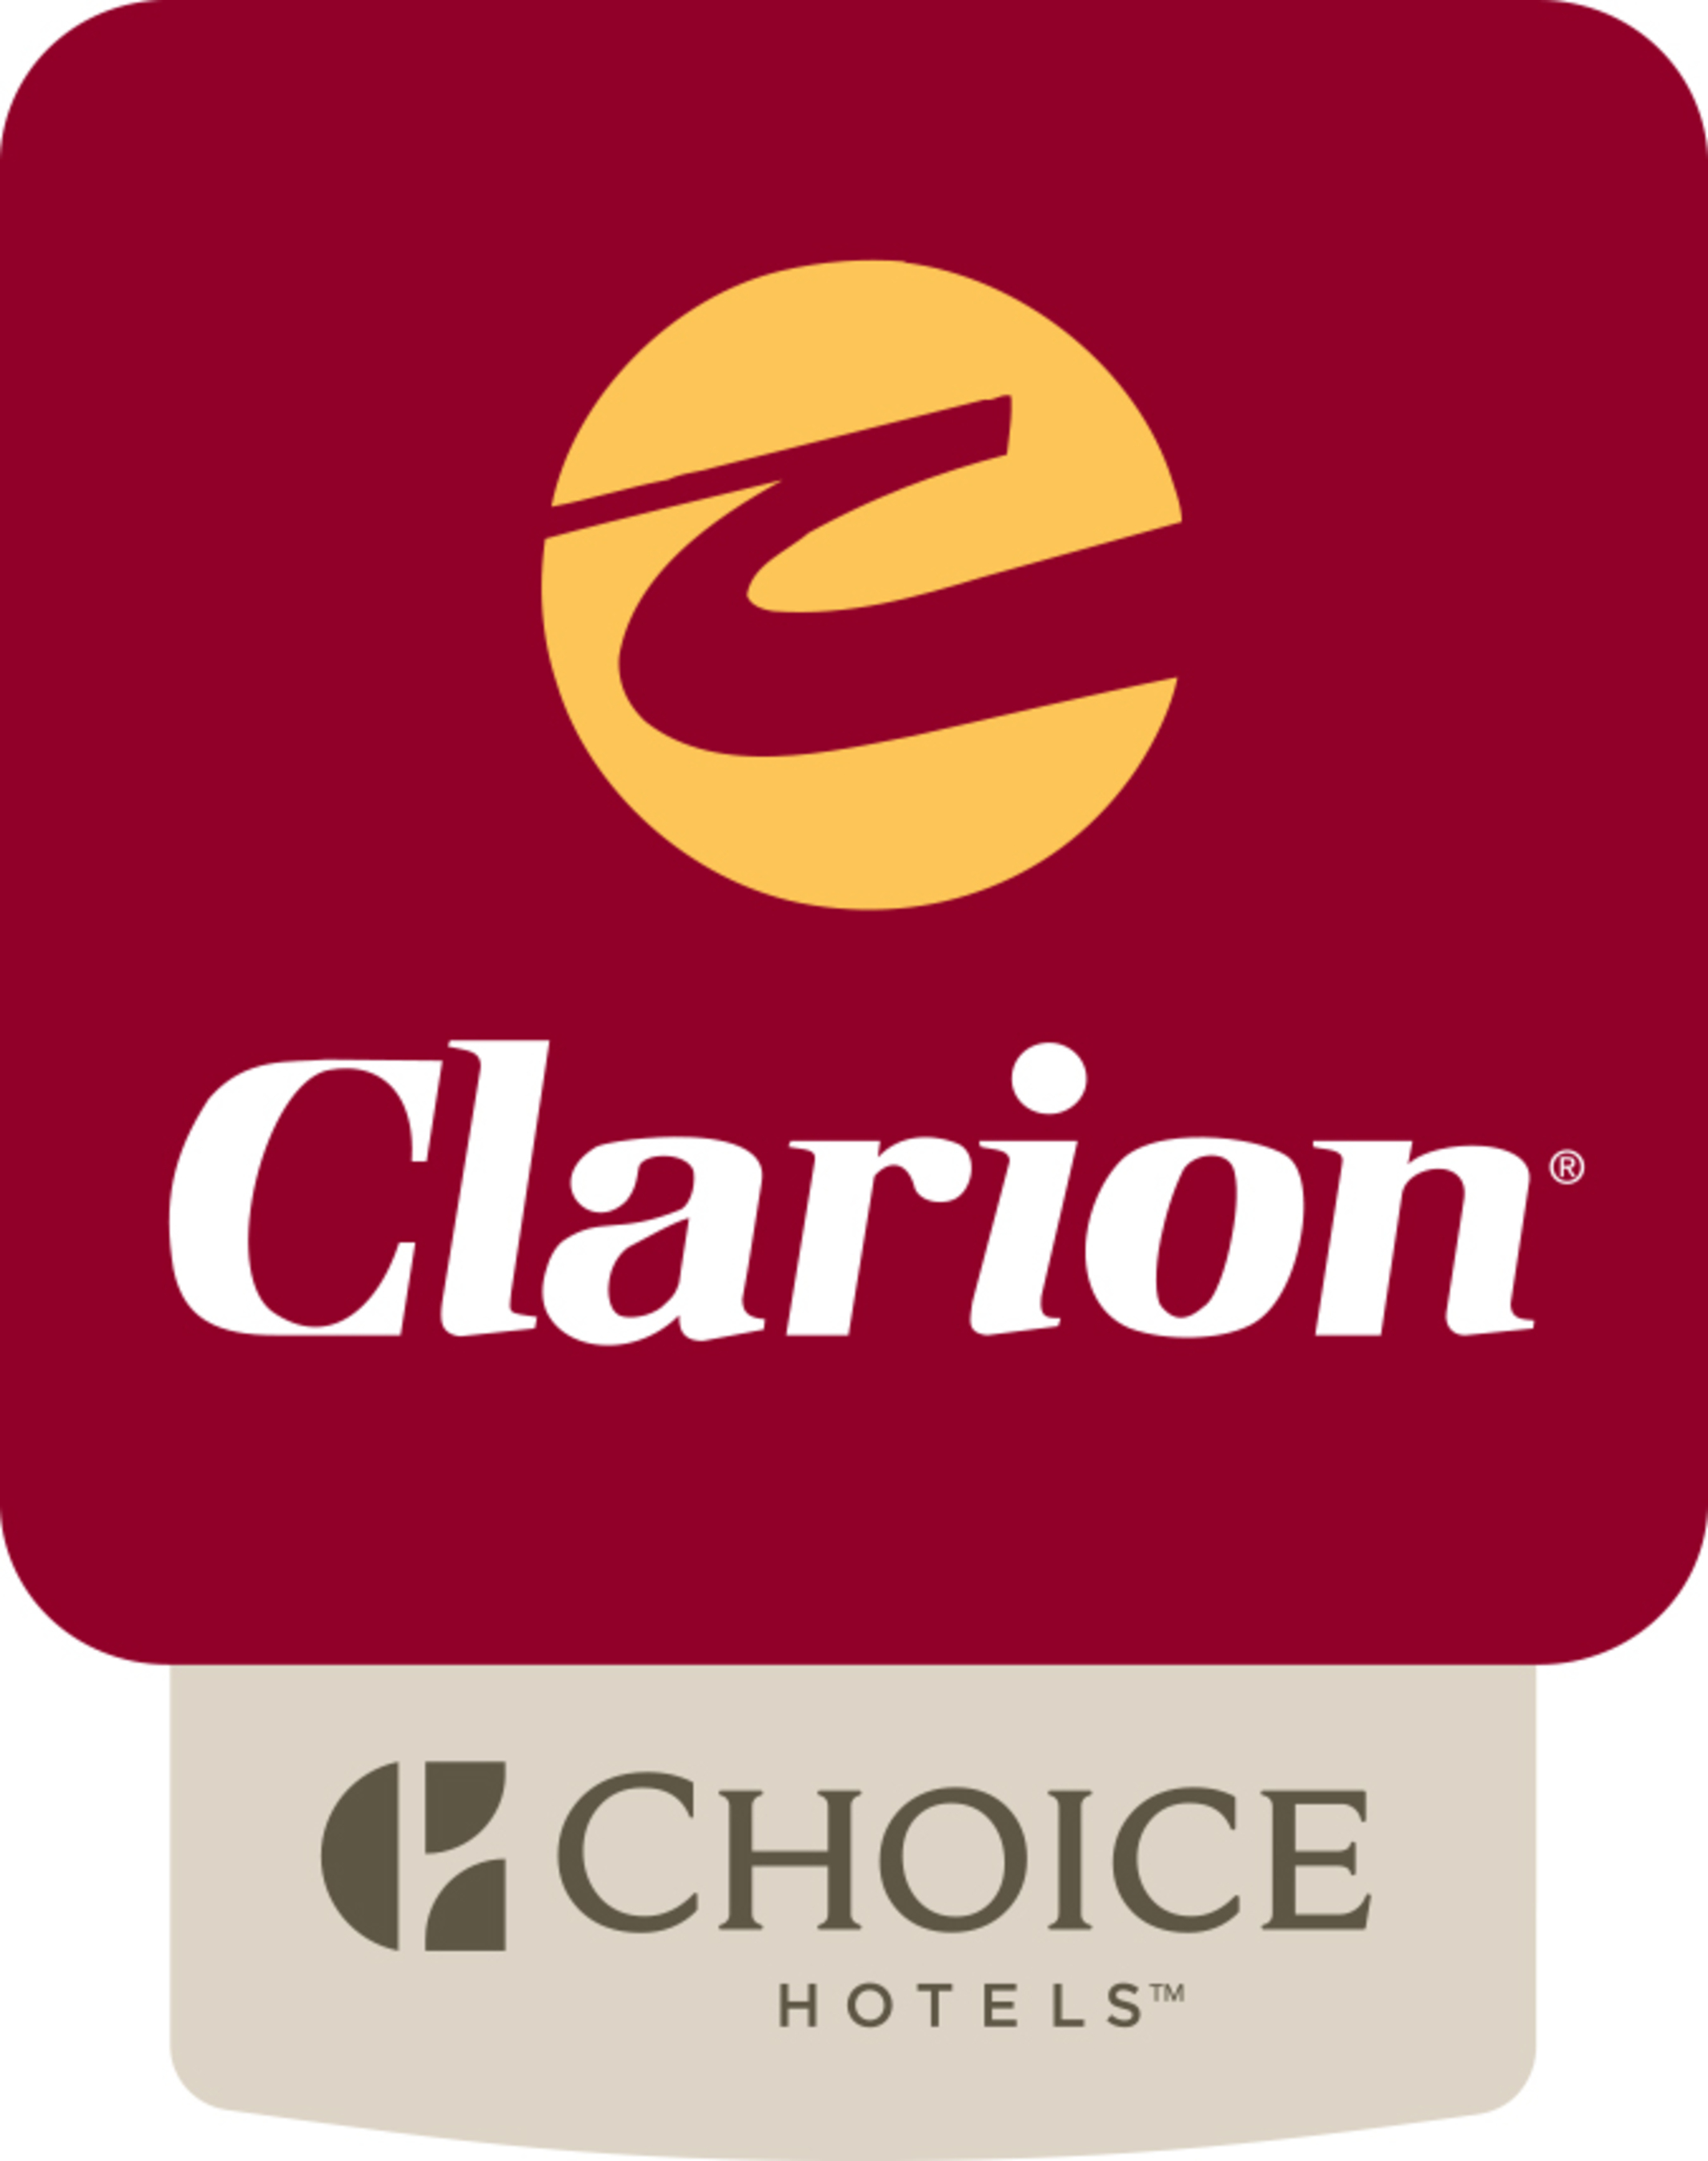 Clarion Launches Meet Me At Clarion Contest